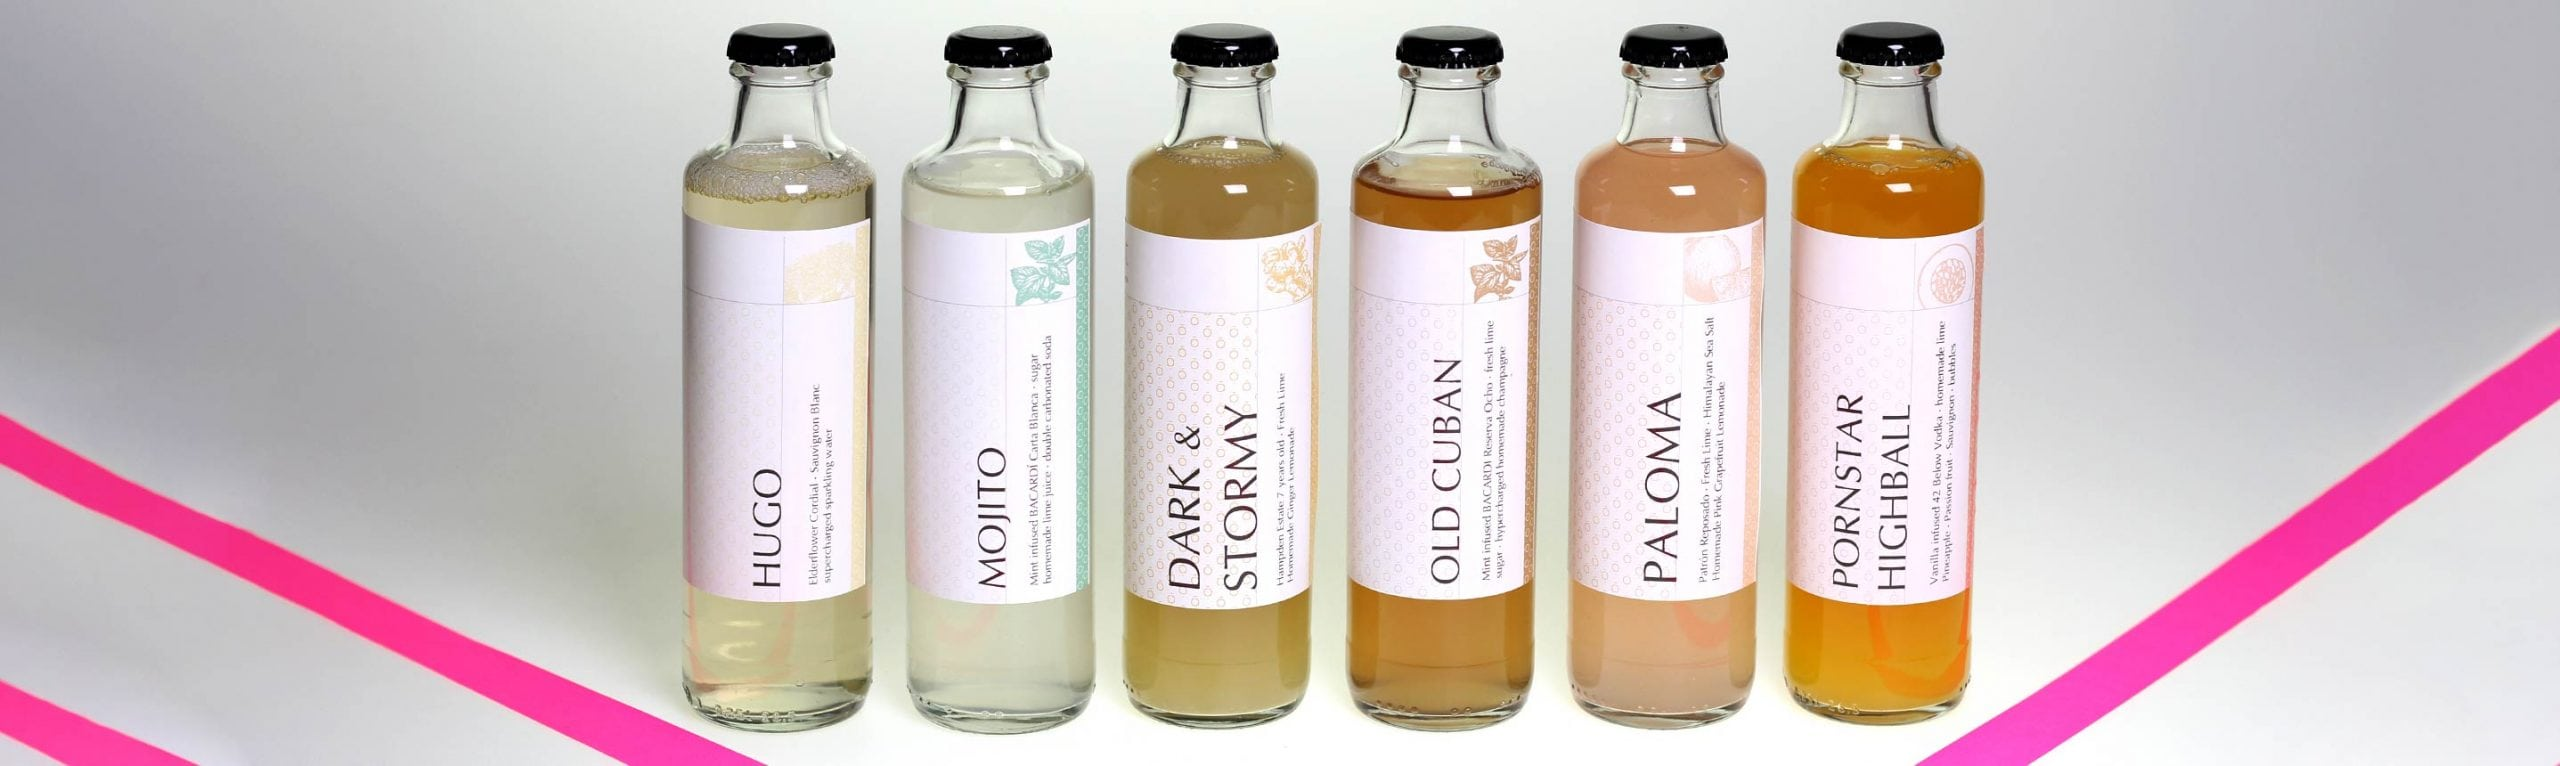 mot-bottled-cocktails-carbonated-drink-range